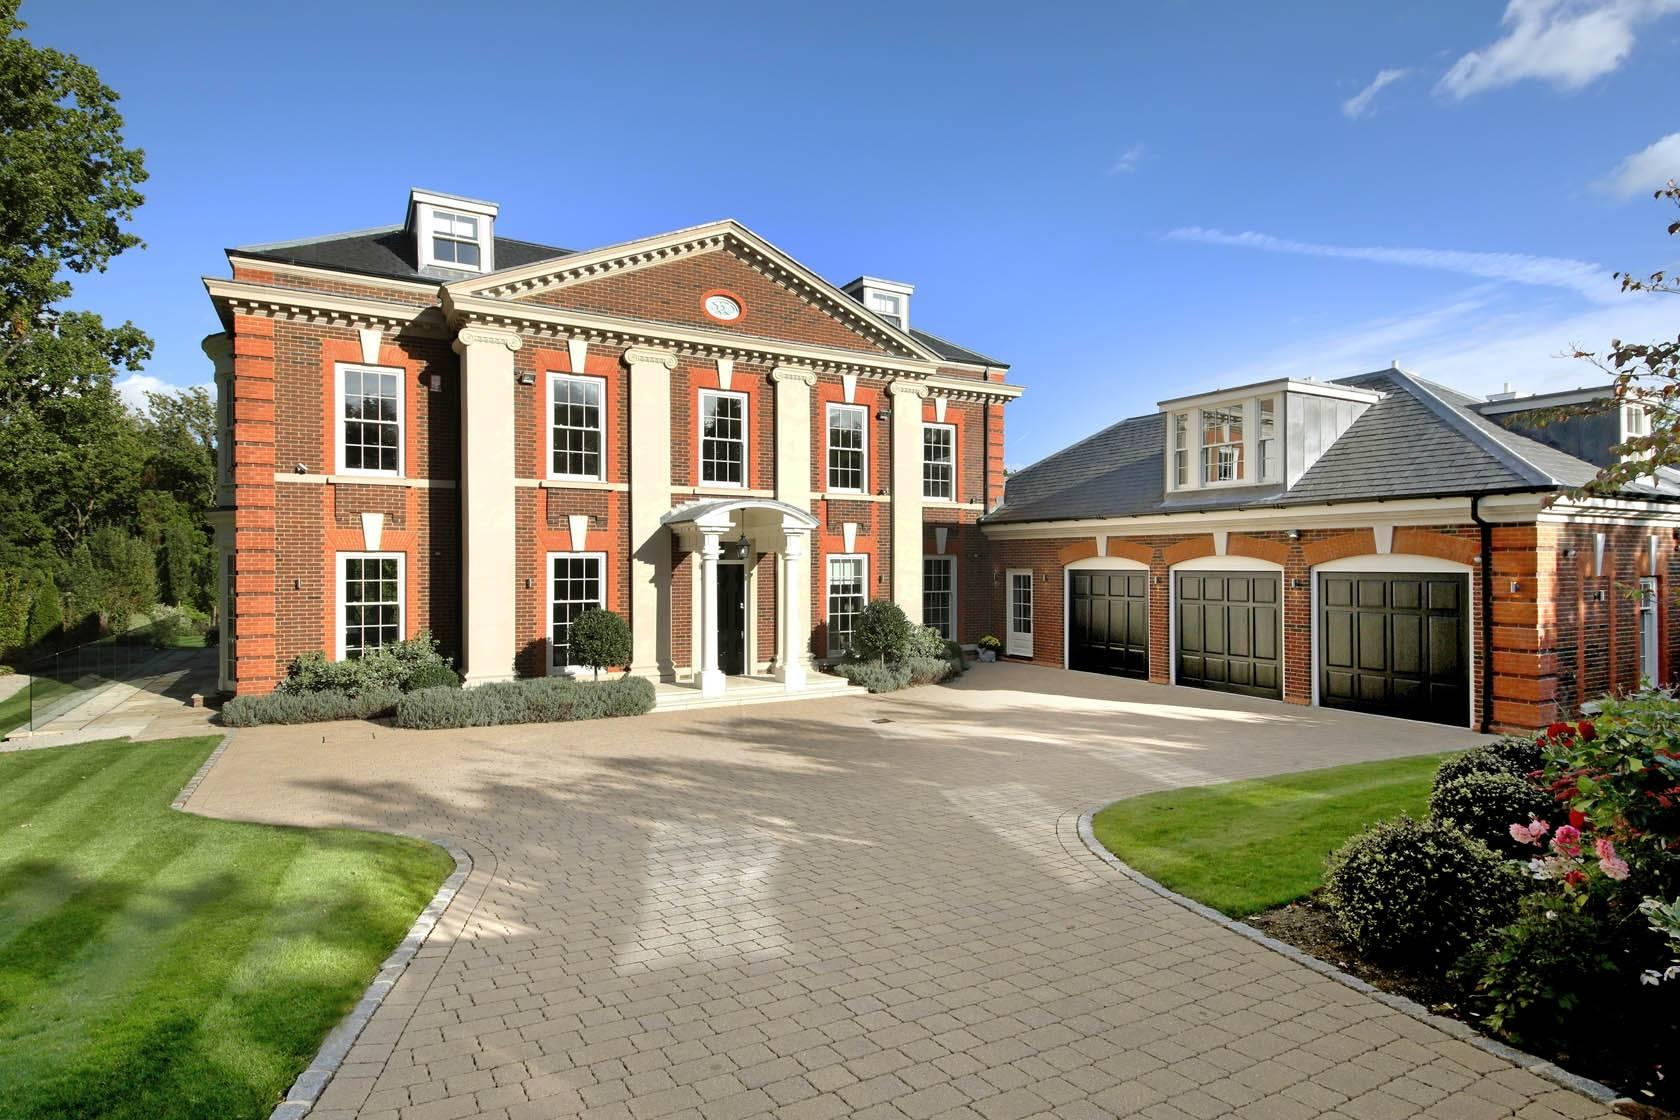 Mega Mansion With Garages For Supercars For Sale In Surrey For £5.5m